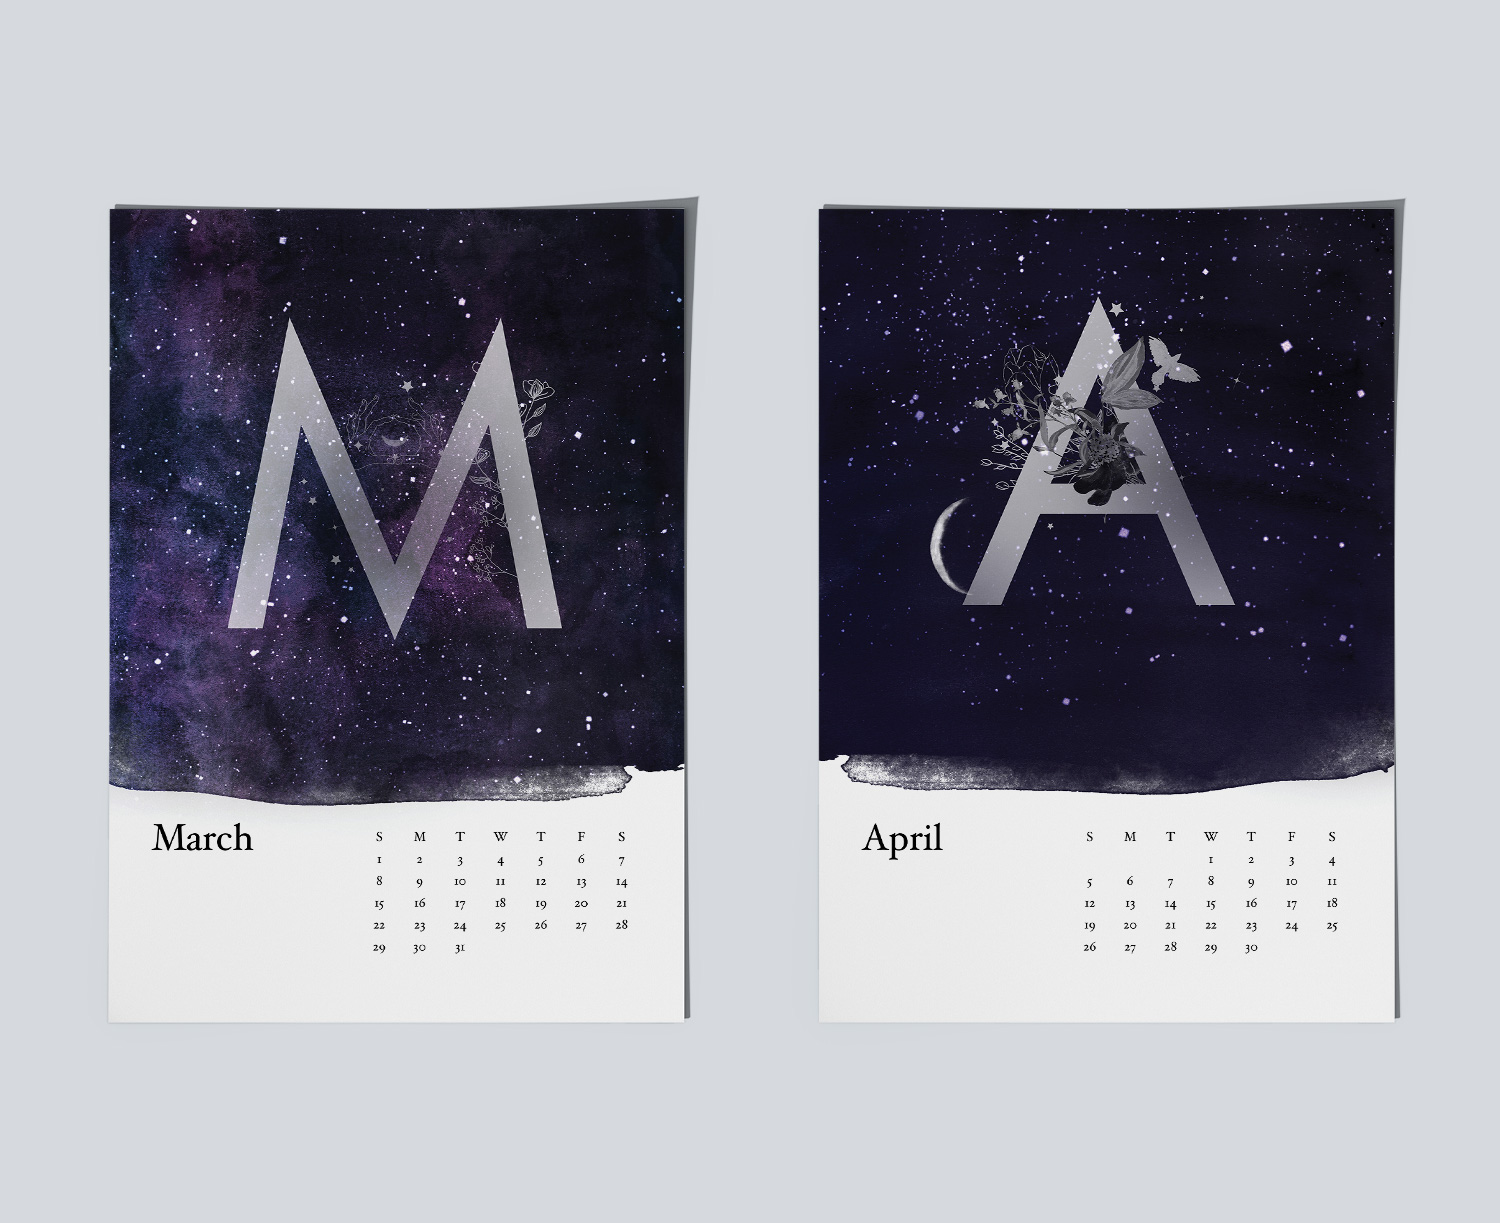 Example of magical night sky paintings for calendar.Example of magical night sky paintings for March and April months.